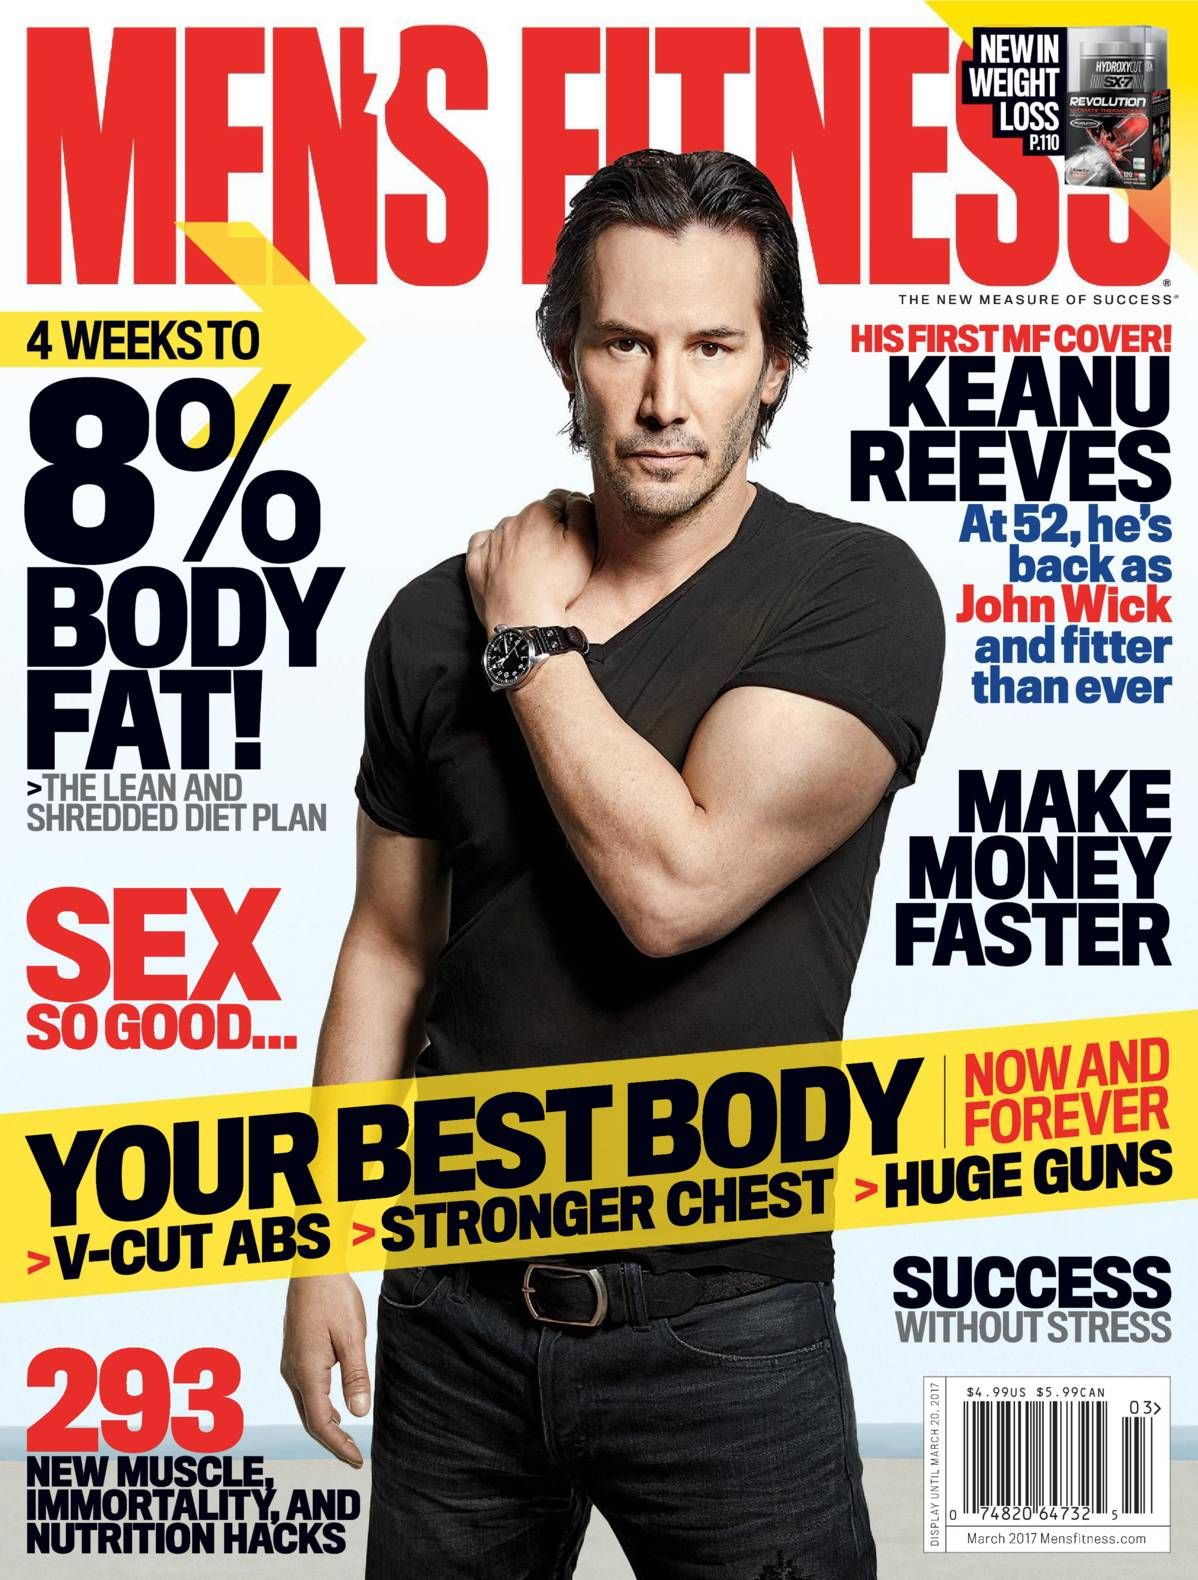 91850bed2bc Free Download Men s Fitness (US)  Magazine - March 2017. YOUR BEST BODY -    V- CUT ABS STRONGER CHEST   HUGE GUNS - NOW AND FOREVER. HIS FIRST MF COVER!